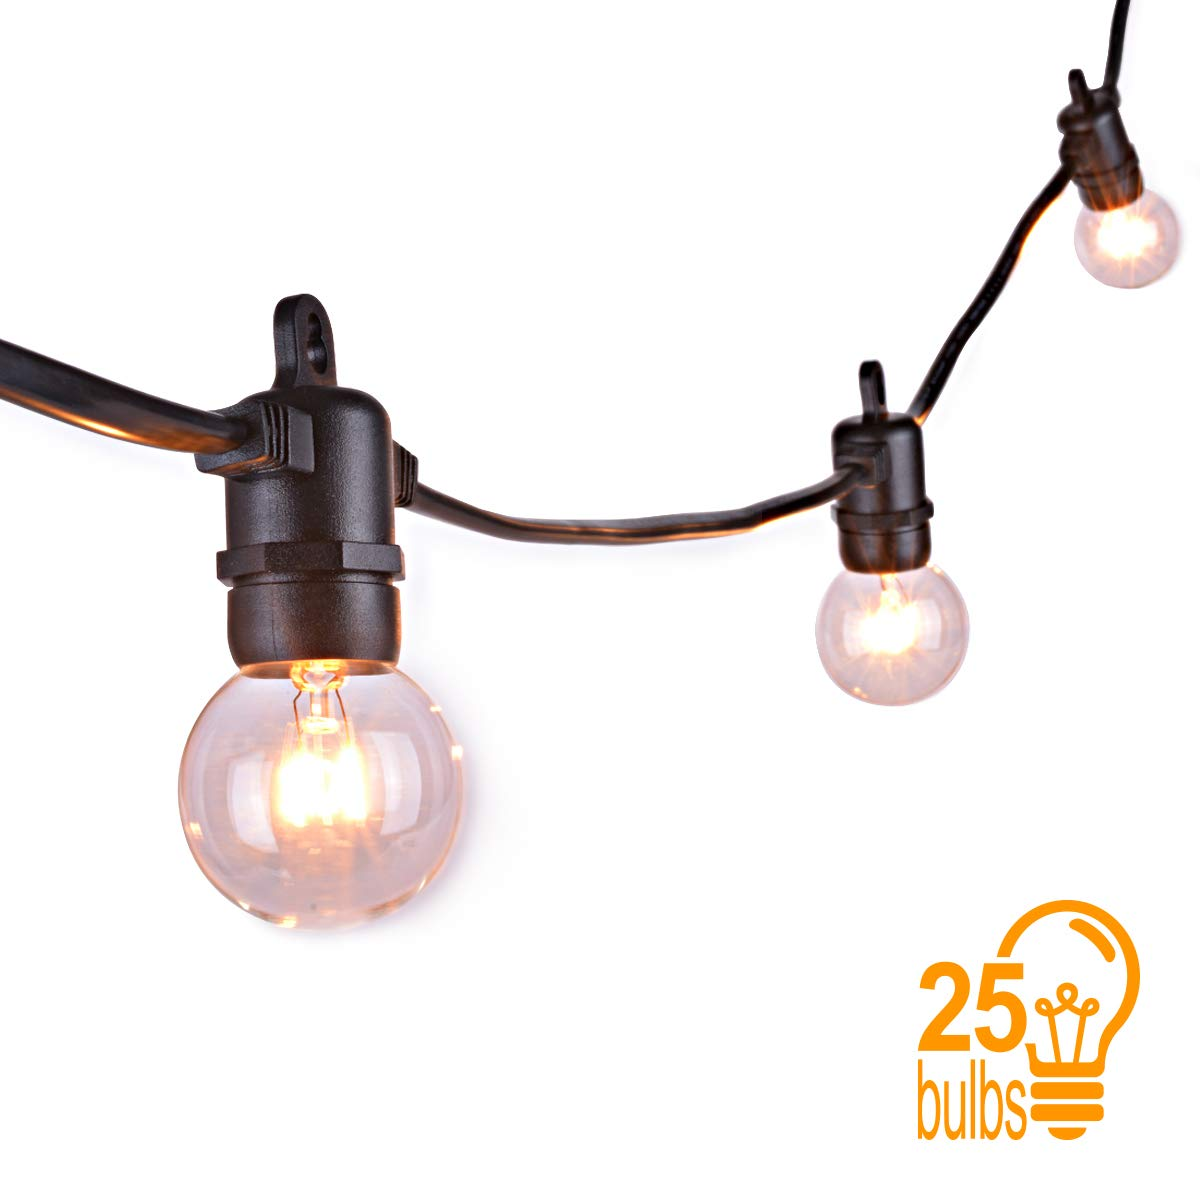 Guirnalda Bombillas Exterior Sunix - G40 Guirnaldas Luz Interior con 25 Bombillas Incandescentes Claras, Decorative String Luces de patio, para Great Garden ...